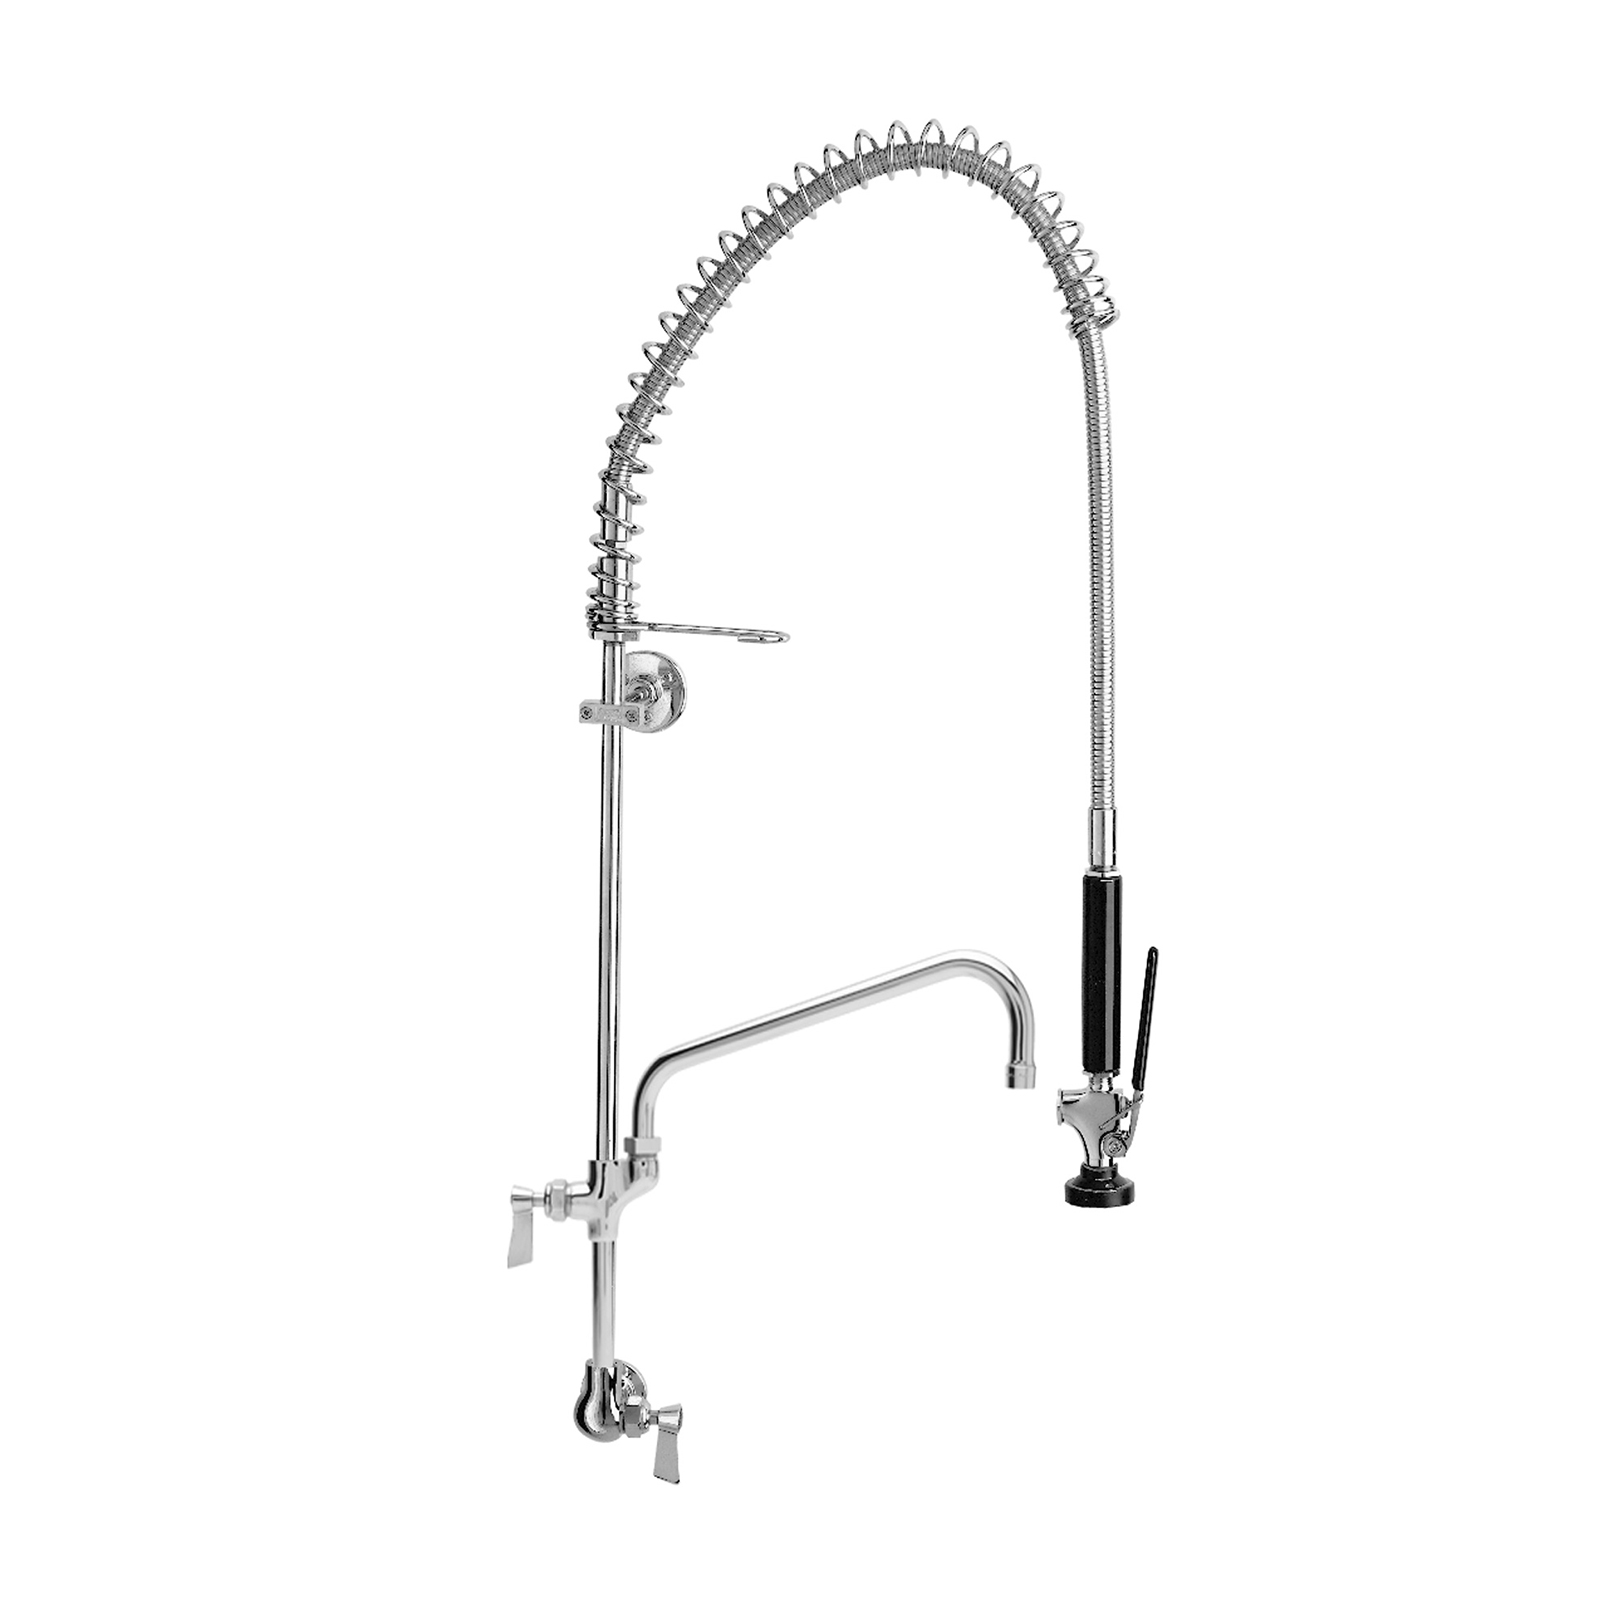 Fisher 34584 pre-rinse faucet assembly, with add on faucet